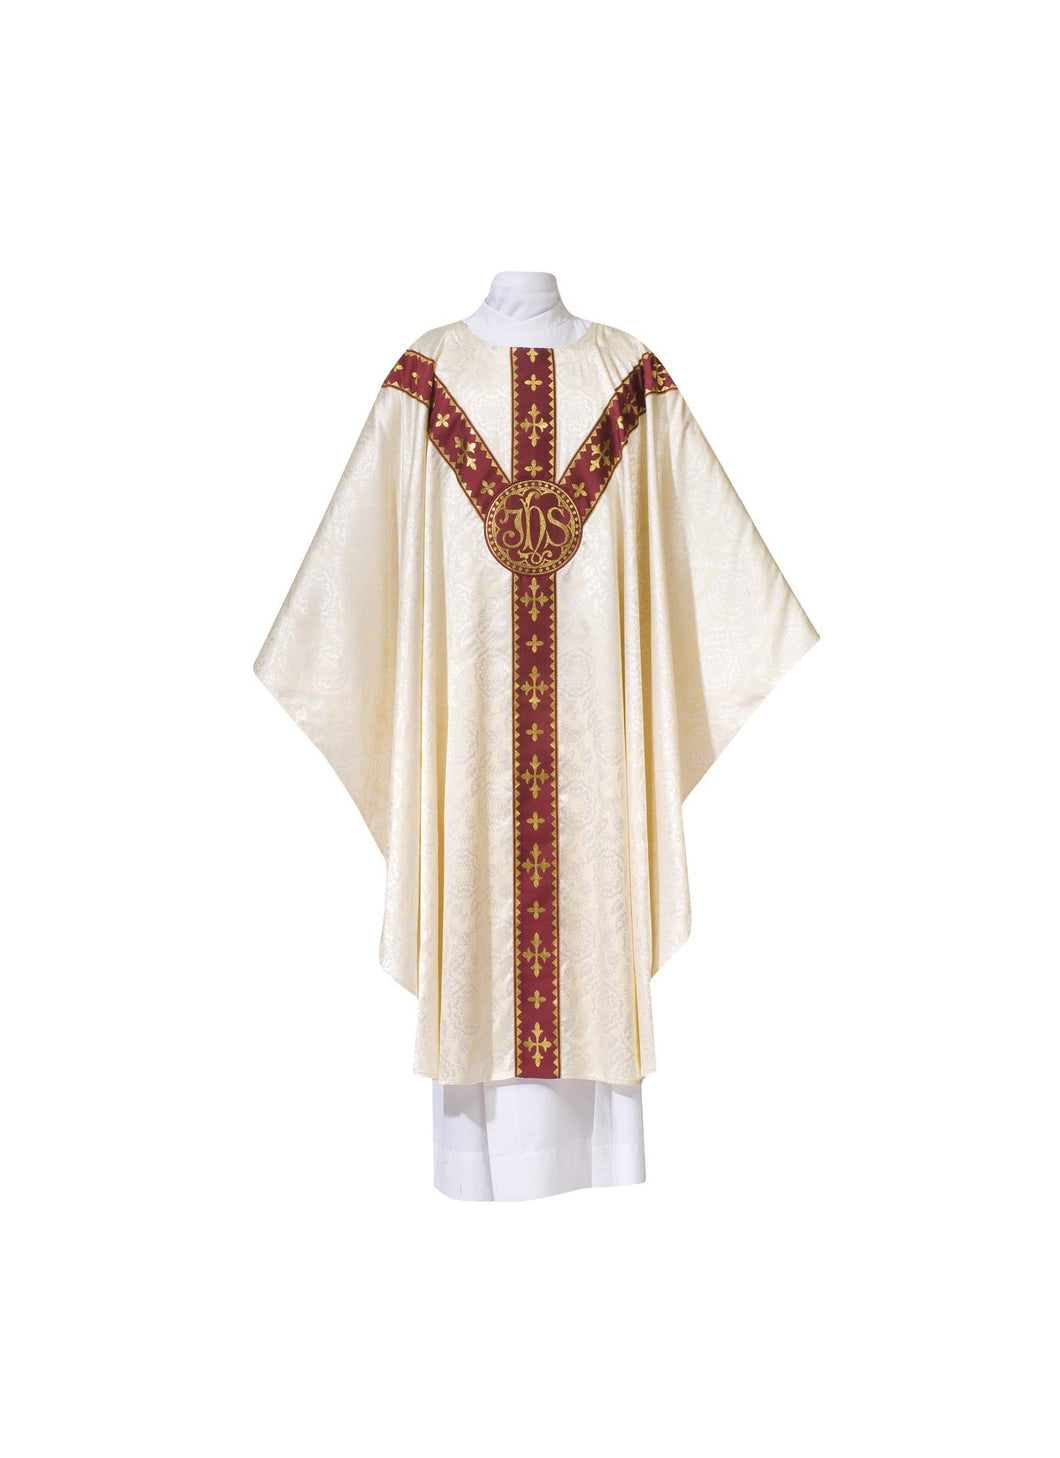 101-0930 CHASUBLE WHITE